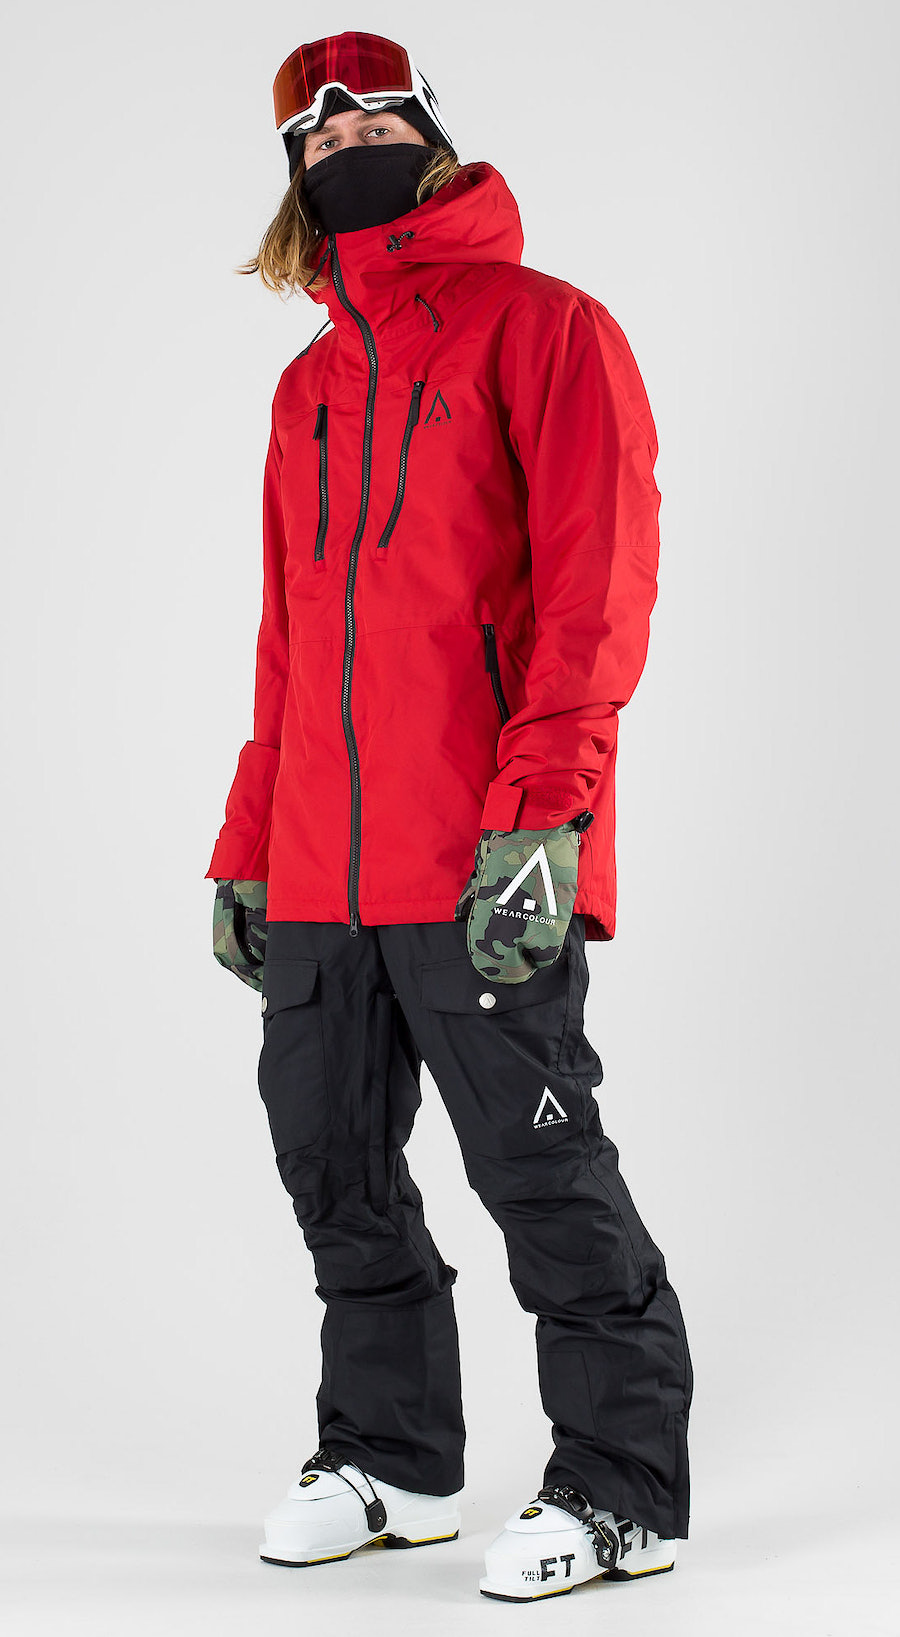 WearColour Grid Falu Red Ski clothing Multi